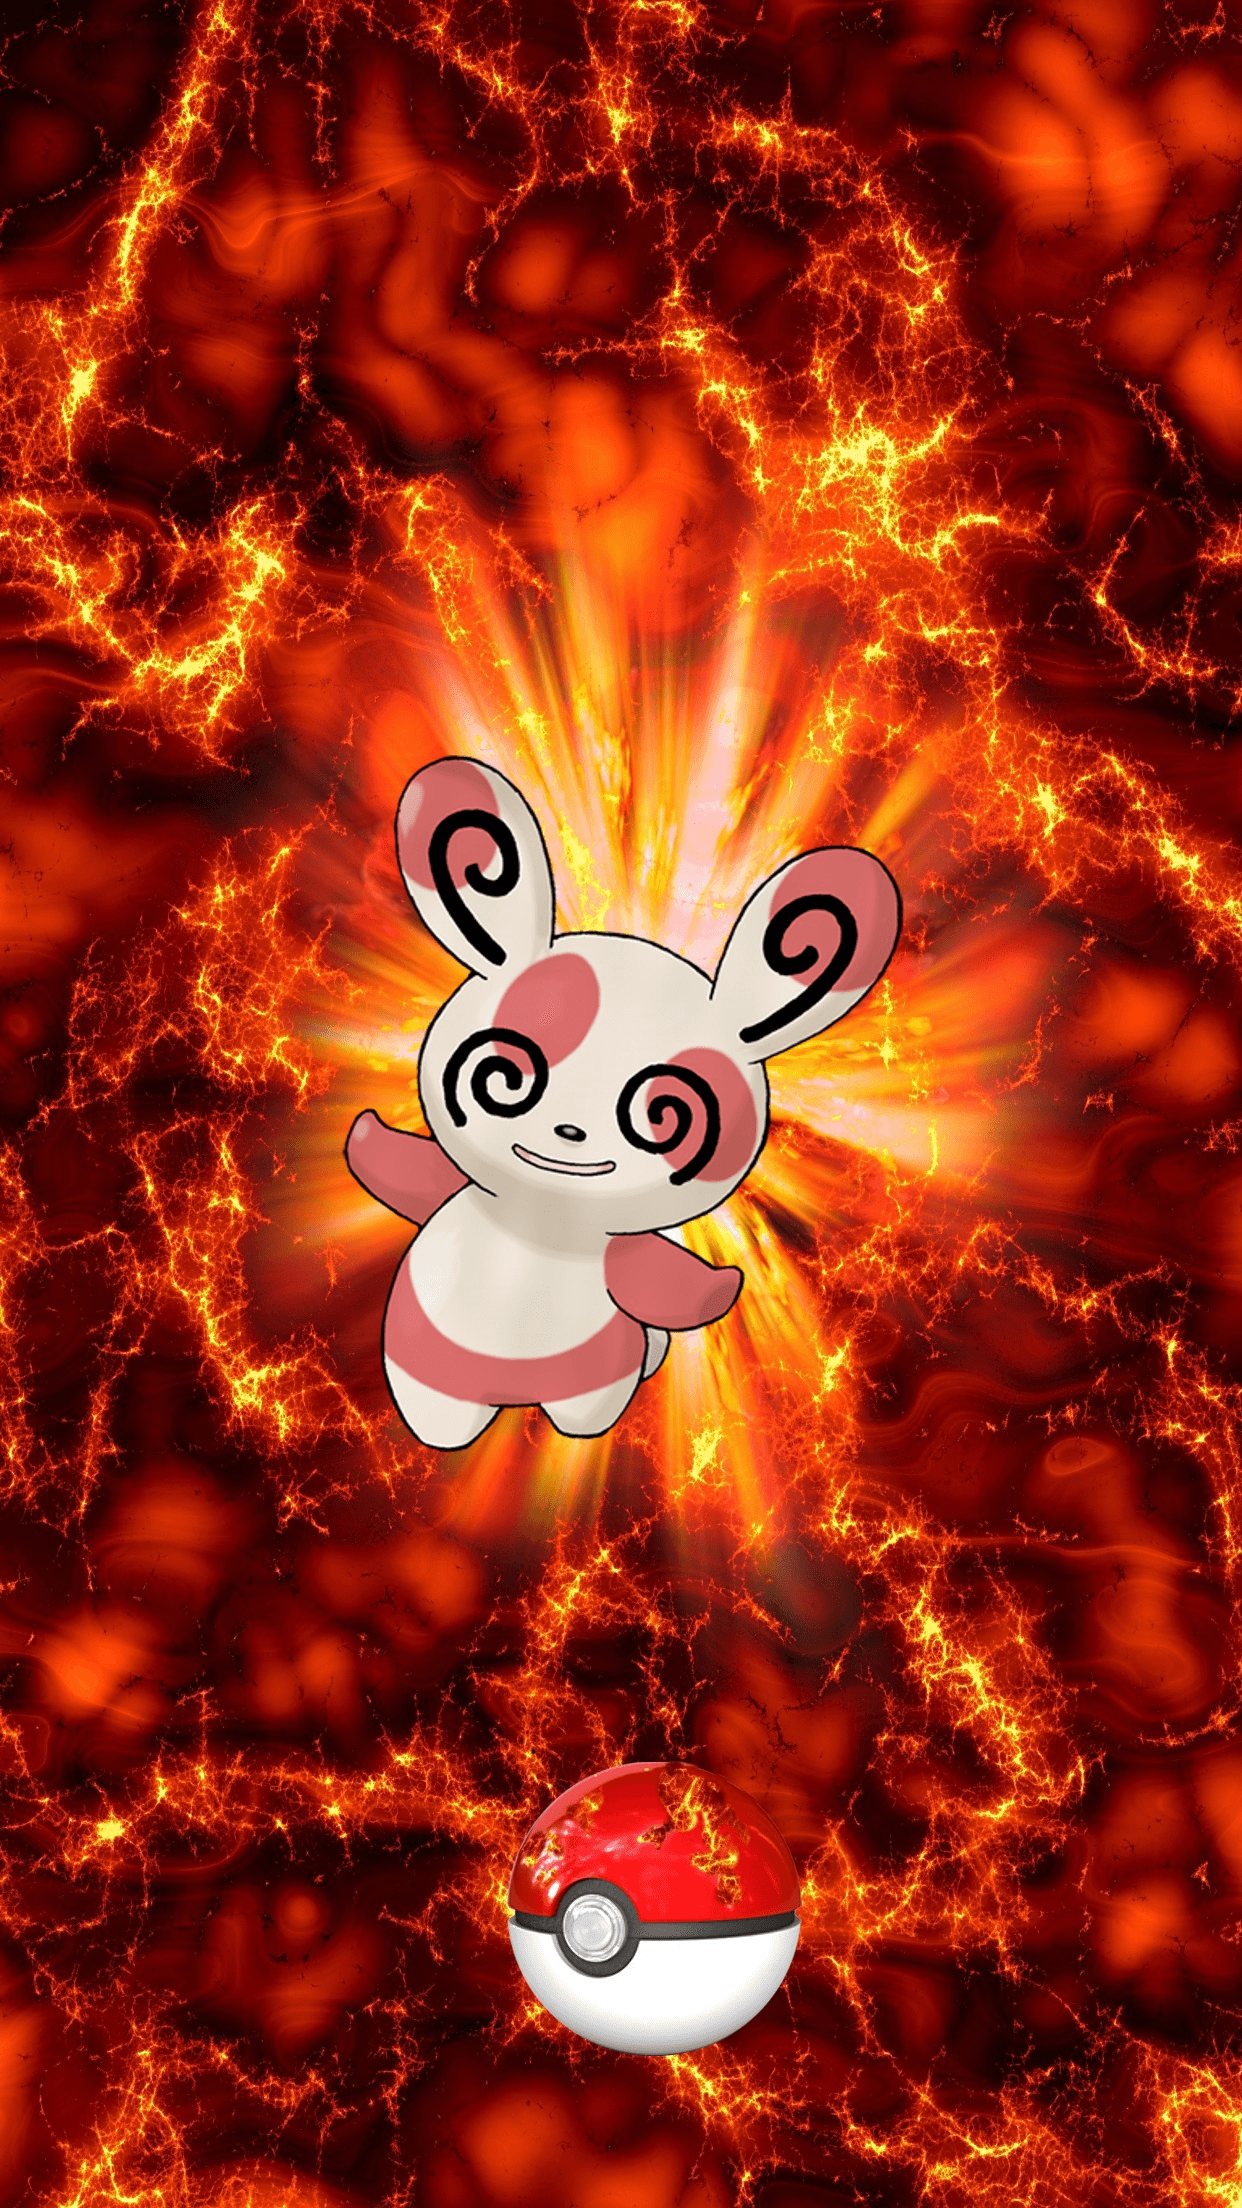 327 Fire Pokeball Spinda Patcheel 14 Egg